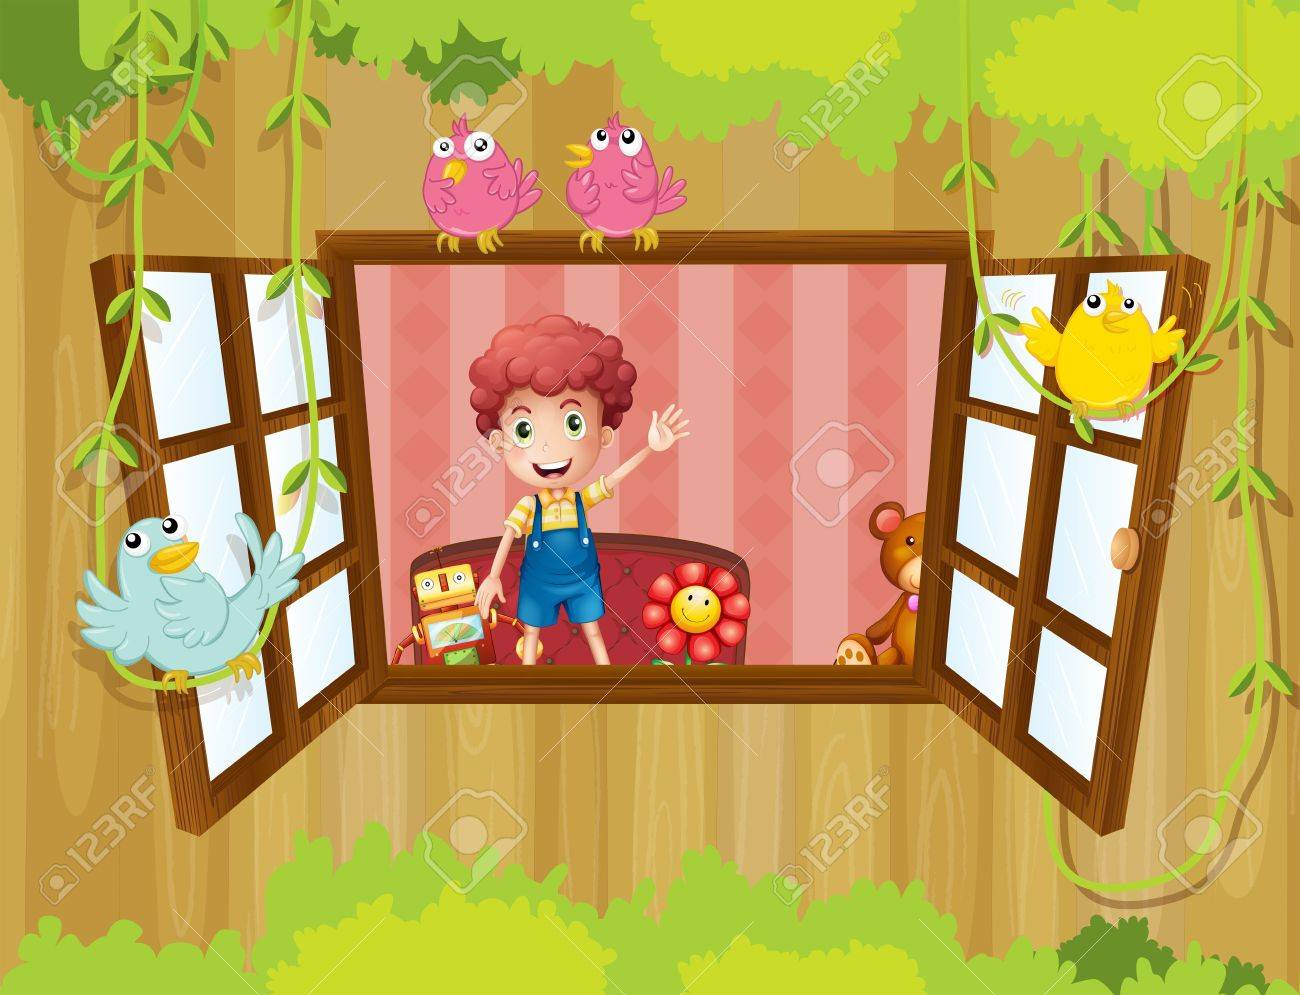 Illustration of a young boy inside the house waving near the window Stock Vector - 20727301